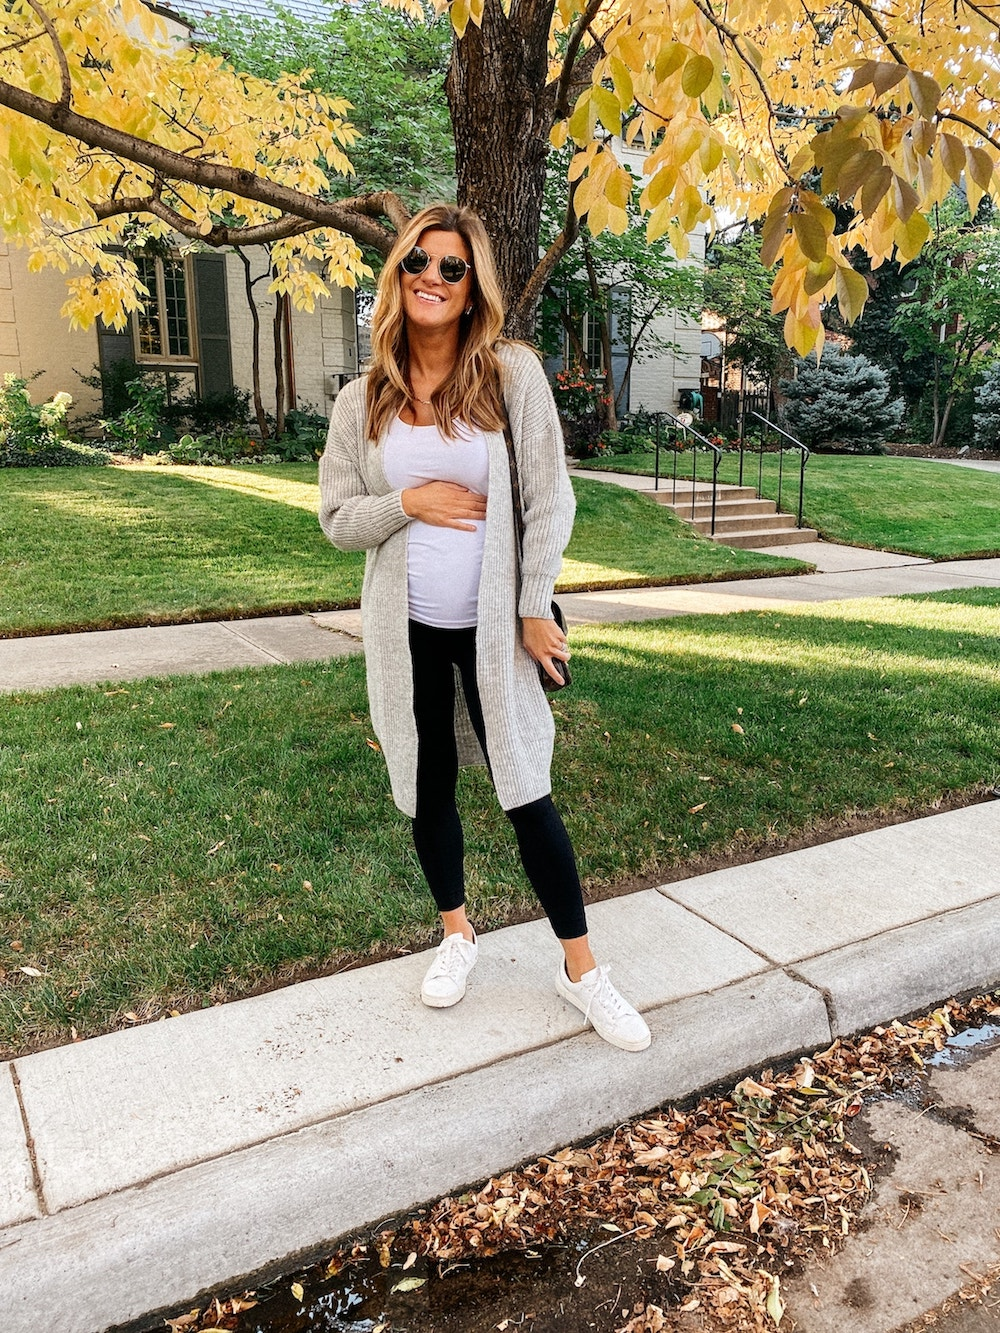 Brighton Butler Fall Outfit Idea, 18 weeks pregnant, maternity leggings grey cardigan white sneakers